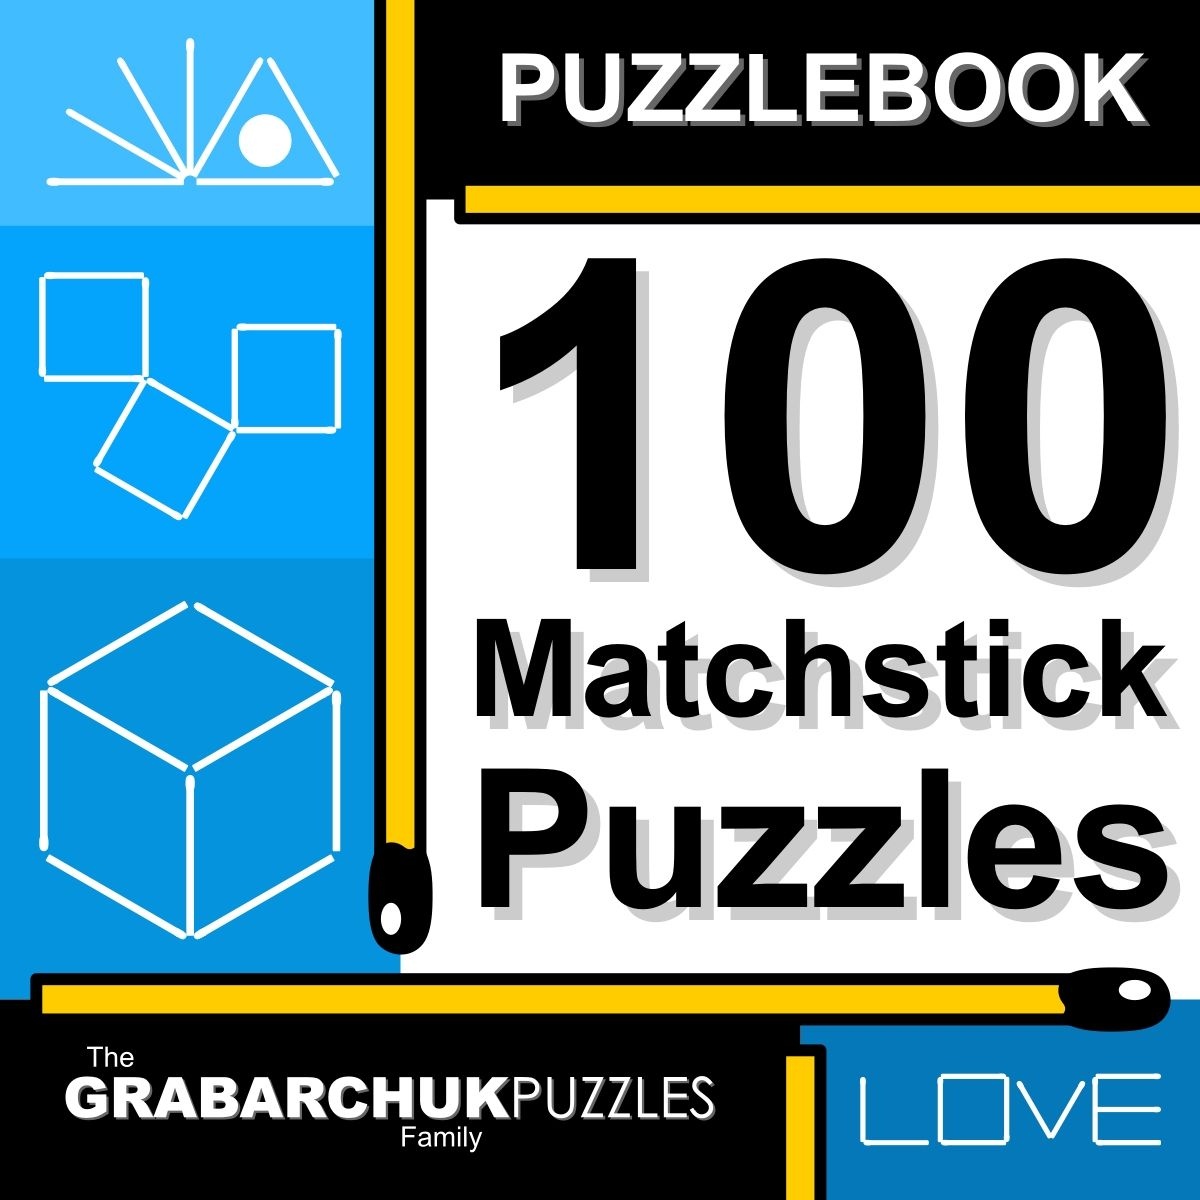 PUZZLEBOOK: 100 MATCHSTICK PUZZLES - Discover a new Puzzlebook series of  hands-on puzzles. The first book embraces 100 matchstick puzzles which you  can play ...